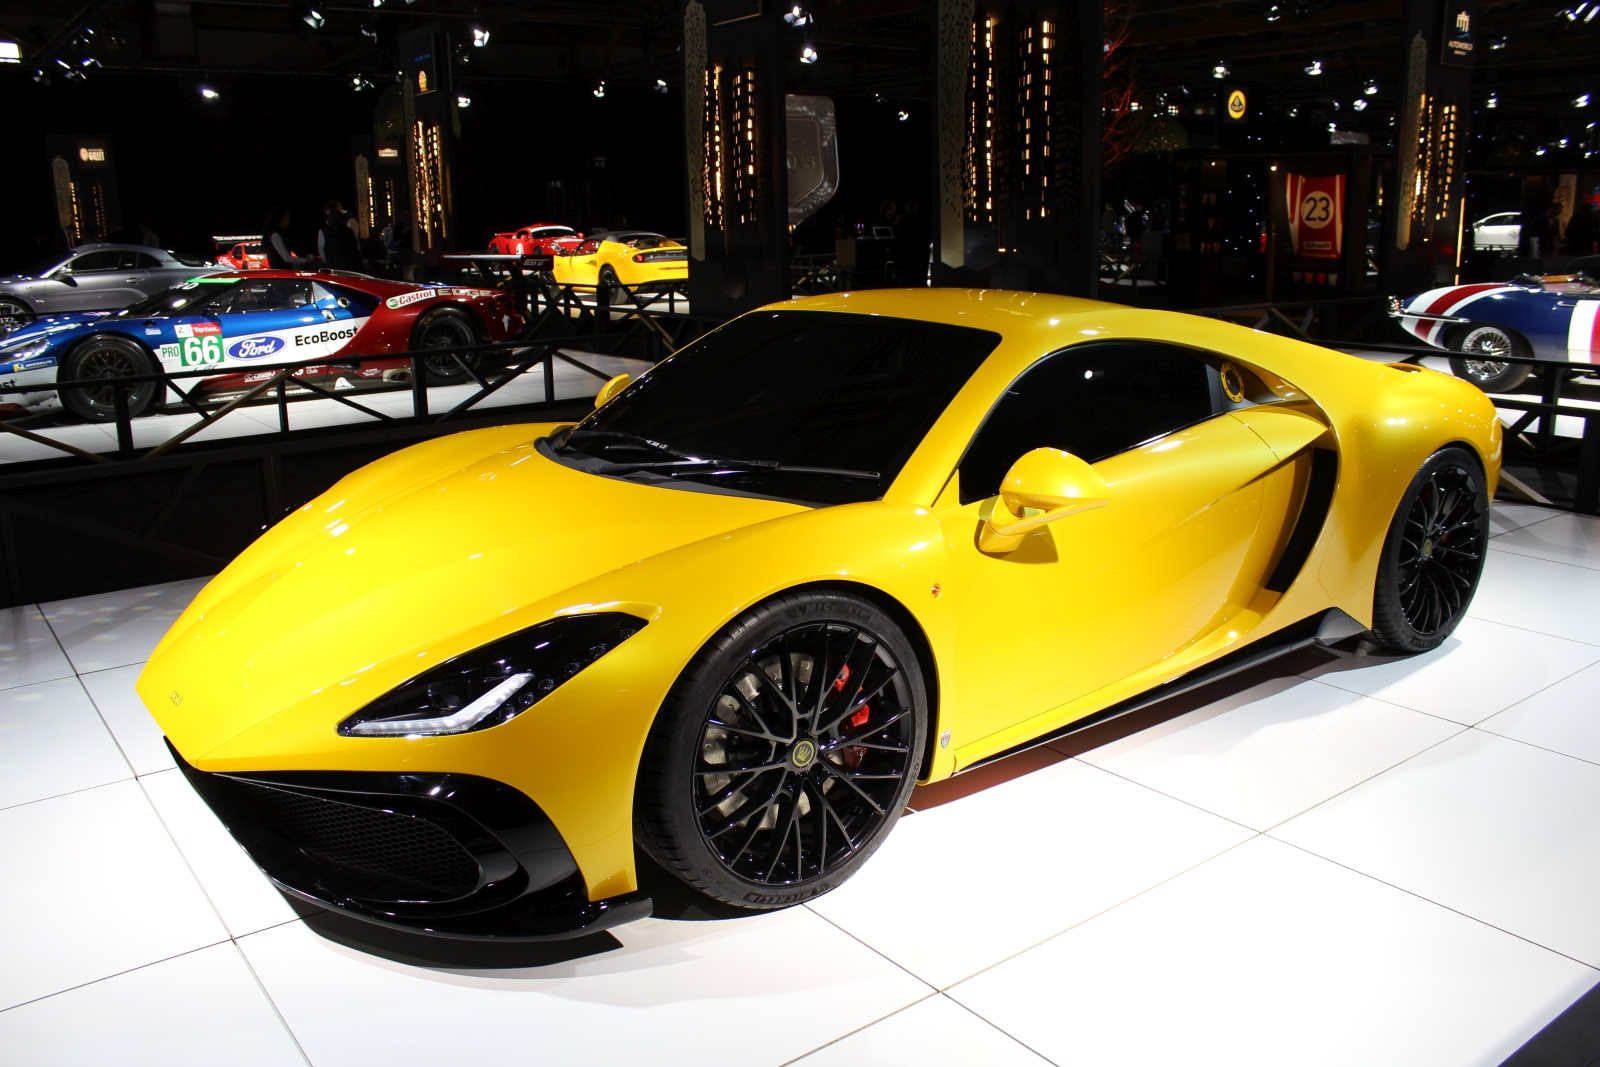 Dream Cars Het Autosalon Brussel 2019 – Fotoverslag AutoRAI.nl